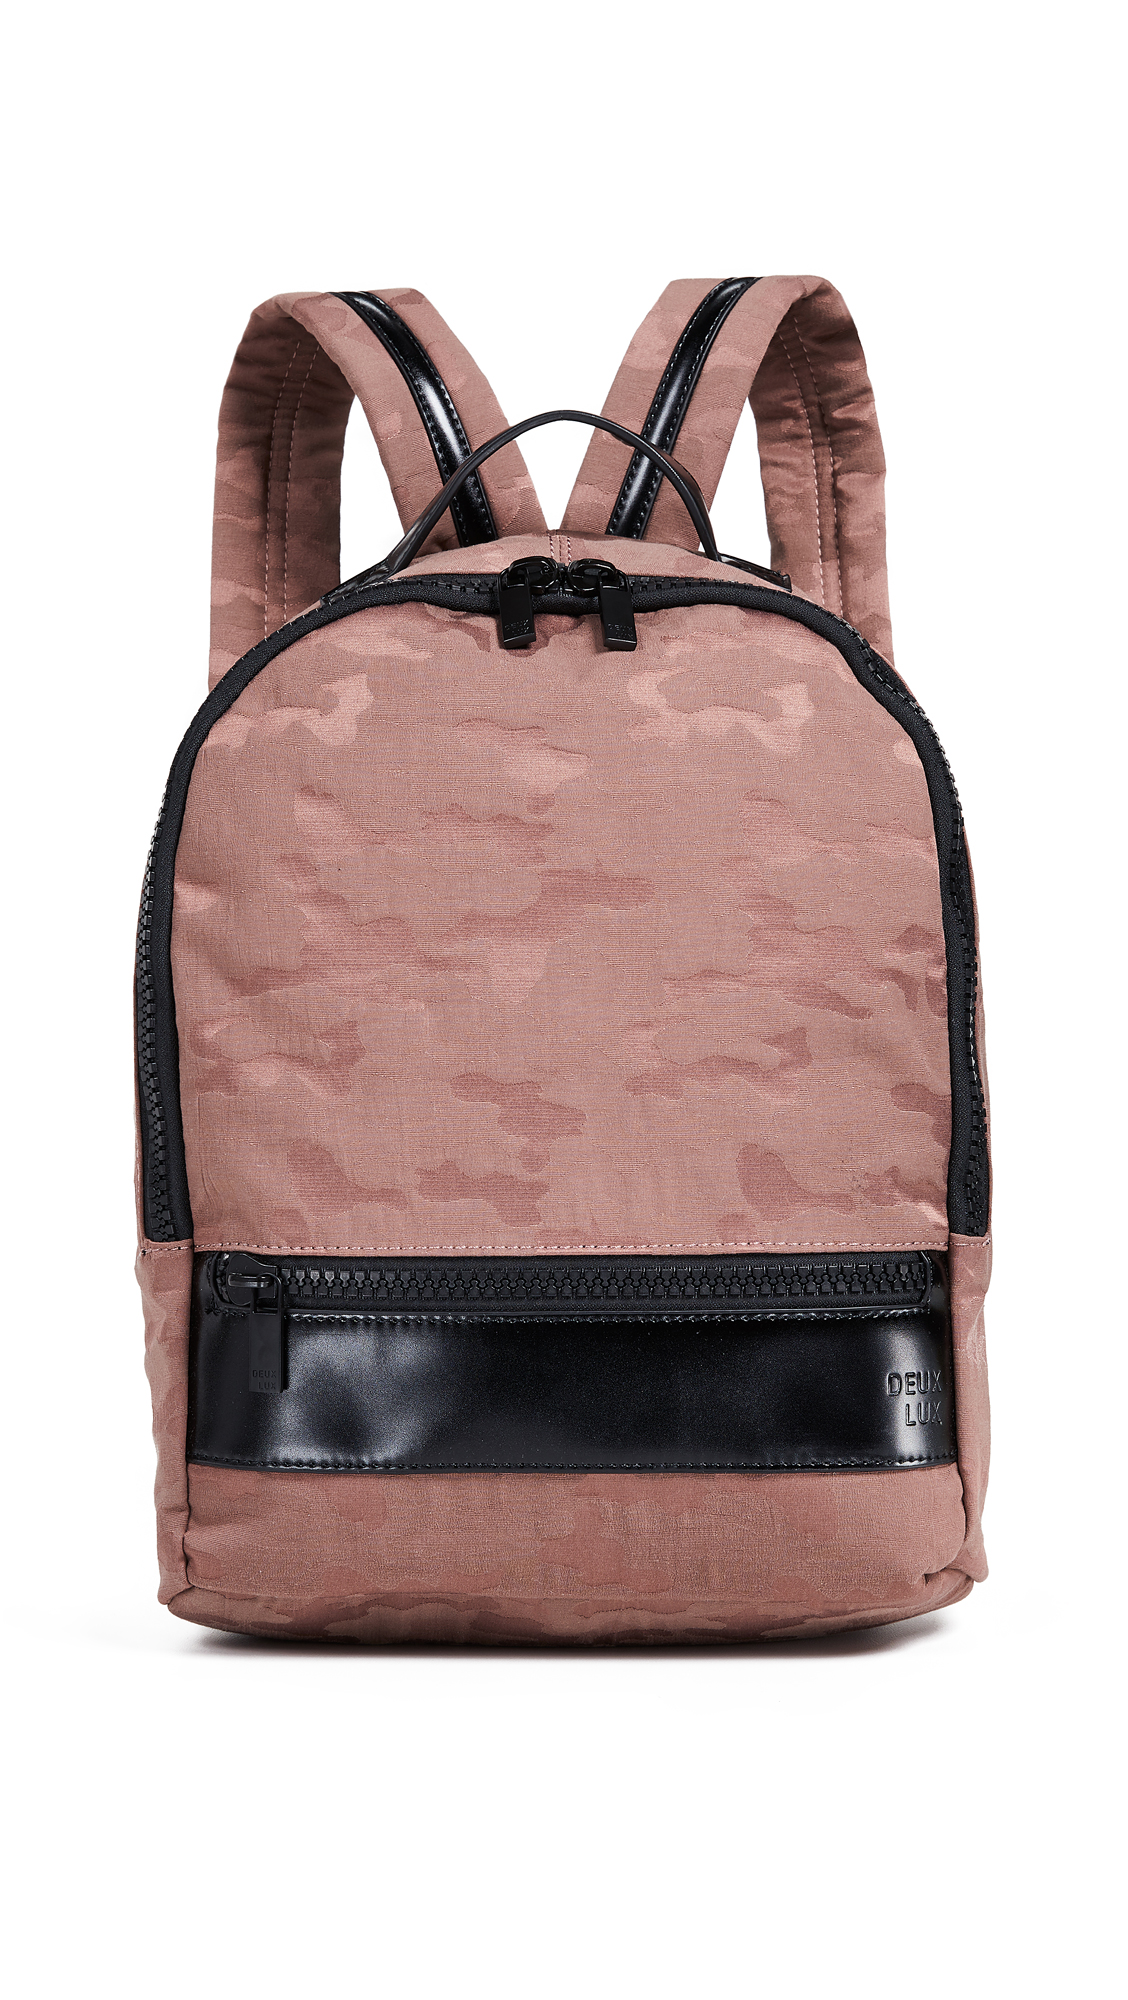 Fabric: Canvas Camo print Zip at top Zip front pocket Patch interior pocket Zip interior pocket Shoulder straps Lined Dust bag included Weight: 19oz / 0.54kg Imported, China Measurements Height: 12.5in / 32cm Length: 10.75in / 27cm Depth: 4in / 10cm